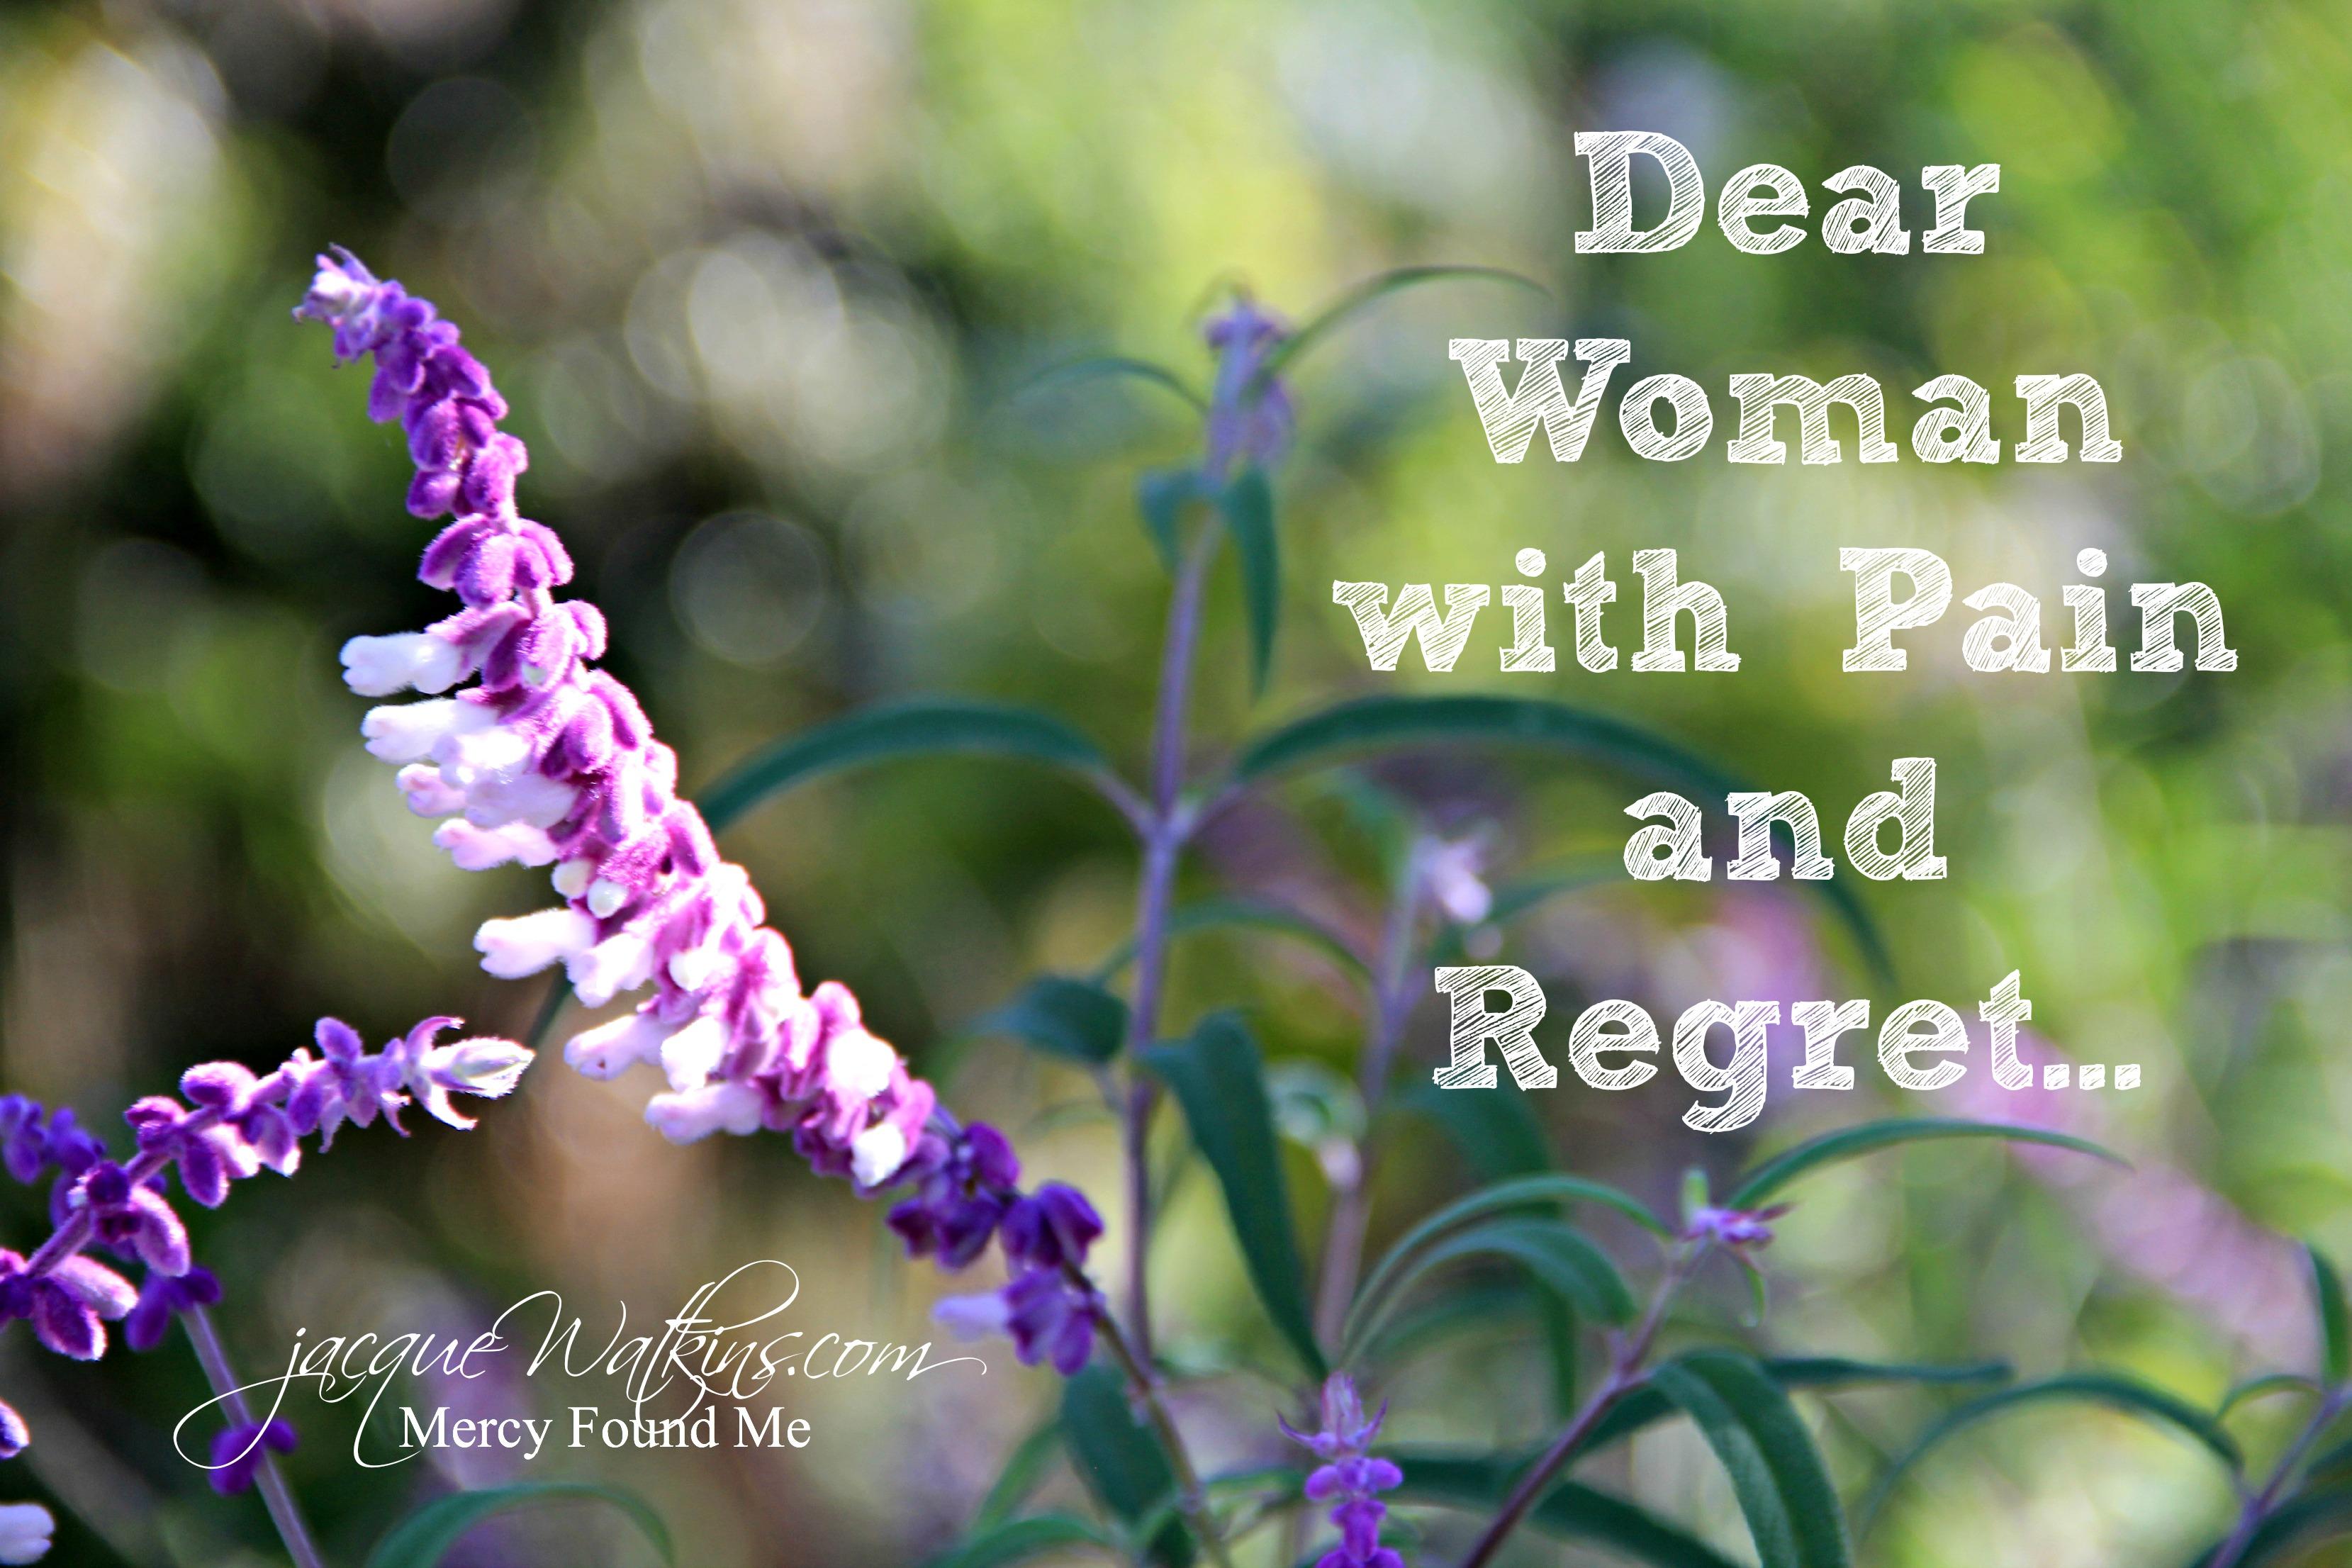 Dear Woman with Pain and Regret…